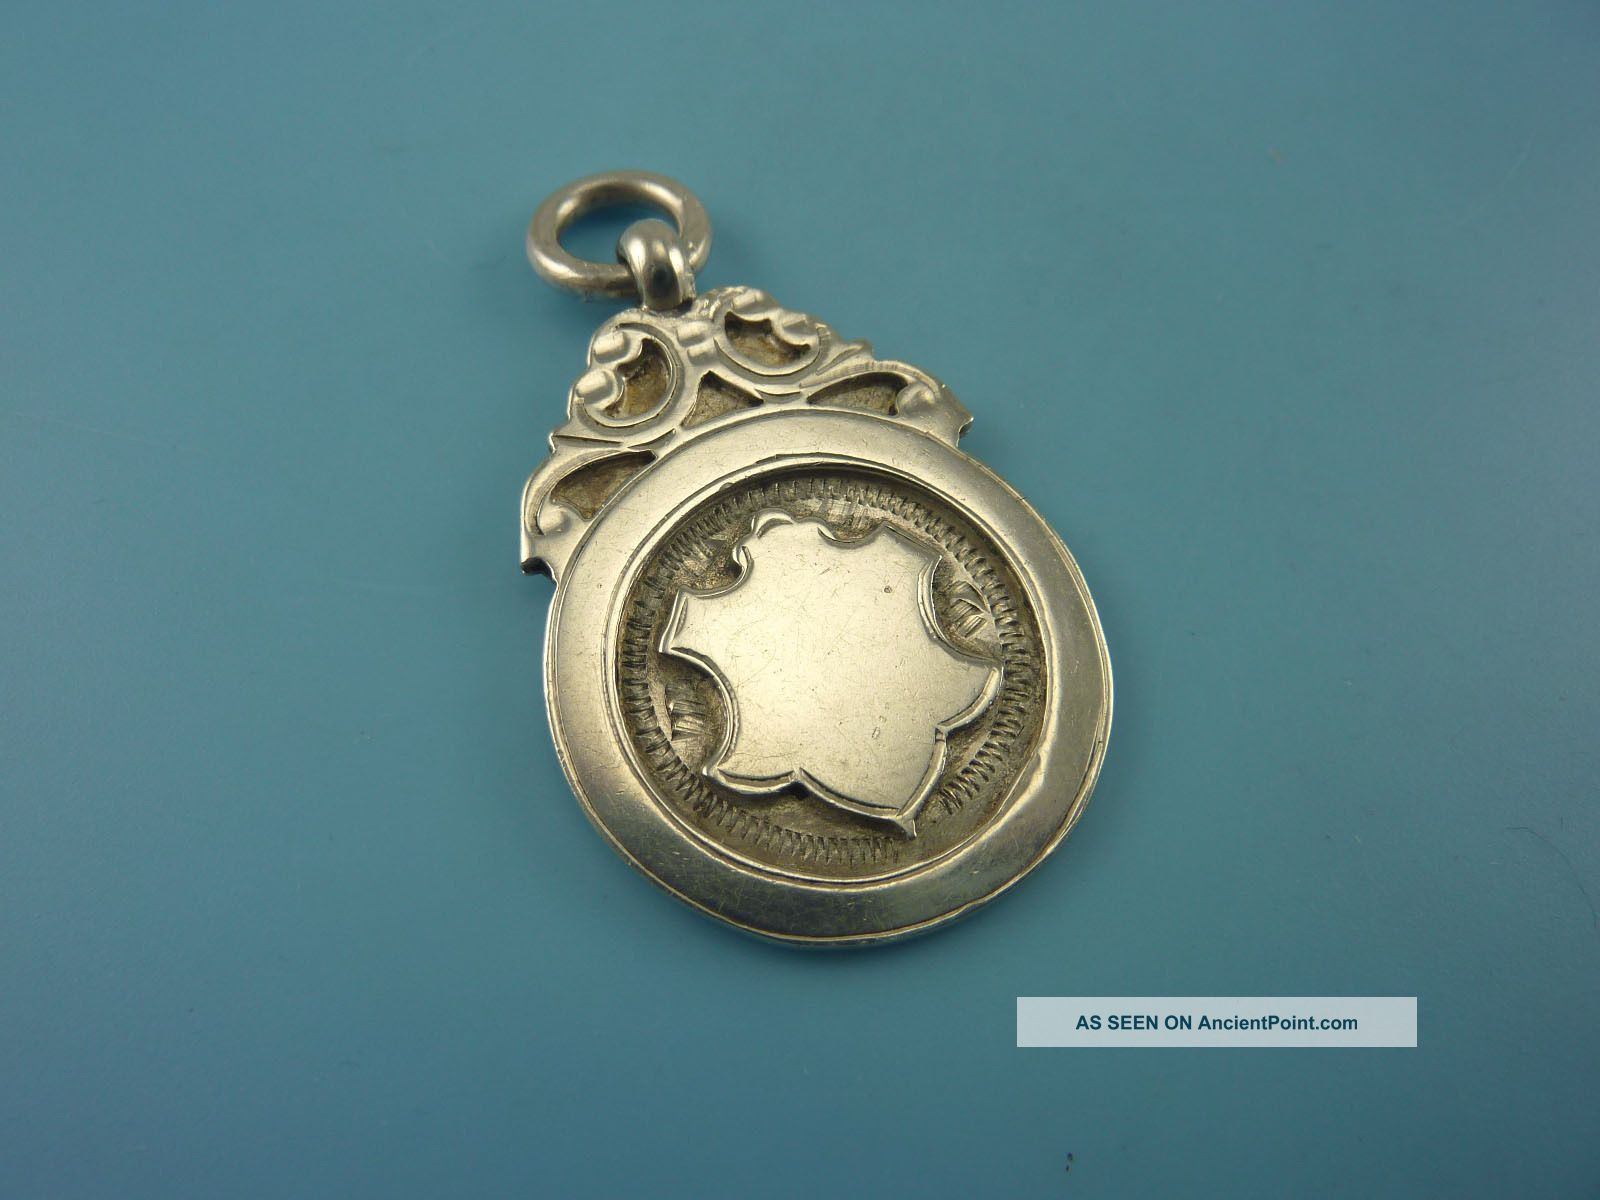 Vintage Sterling Silver Watch Chain Medal - 1930 Pocket Watches/ Chains/ Fobs photo